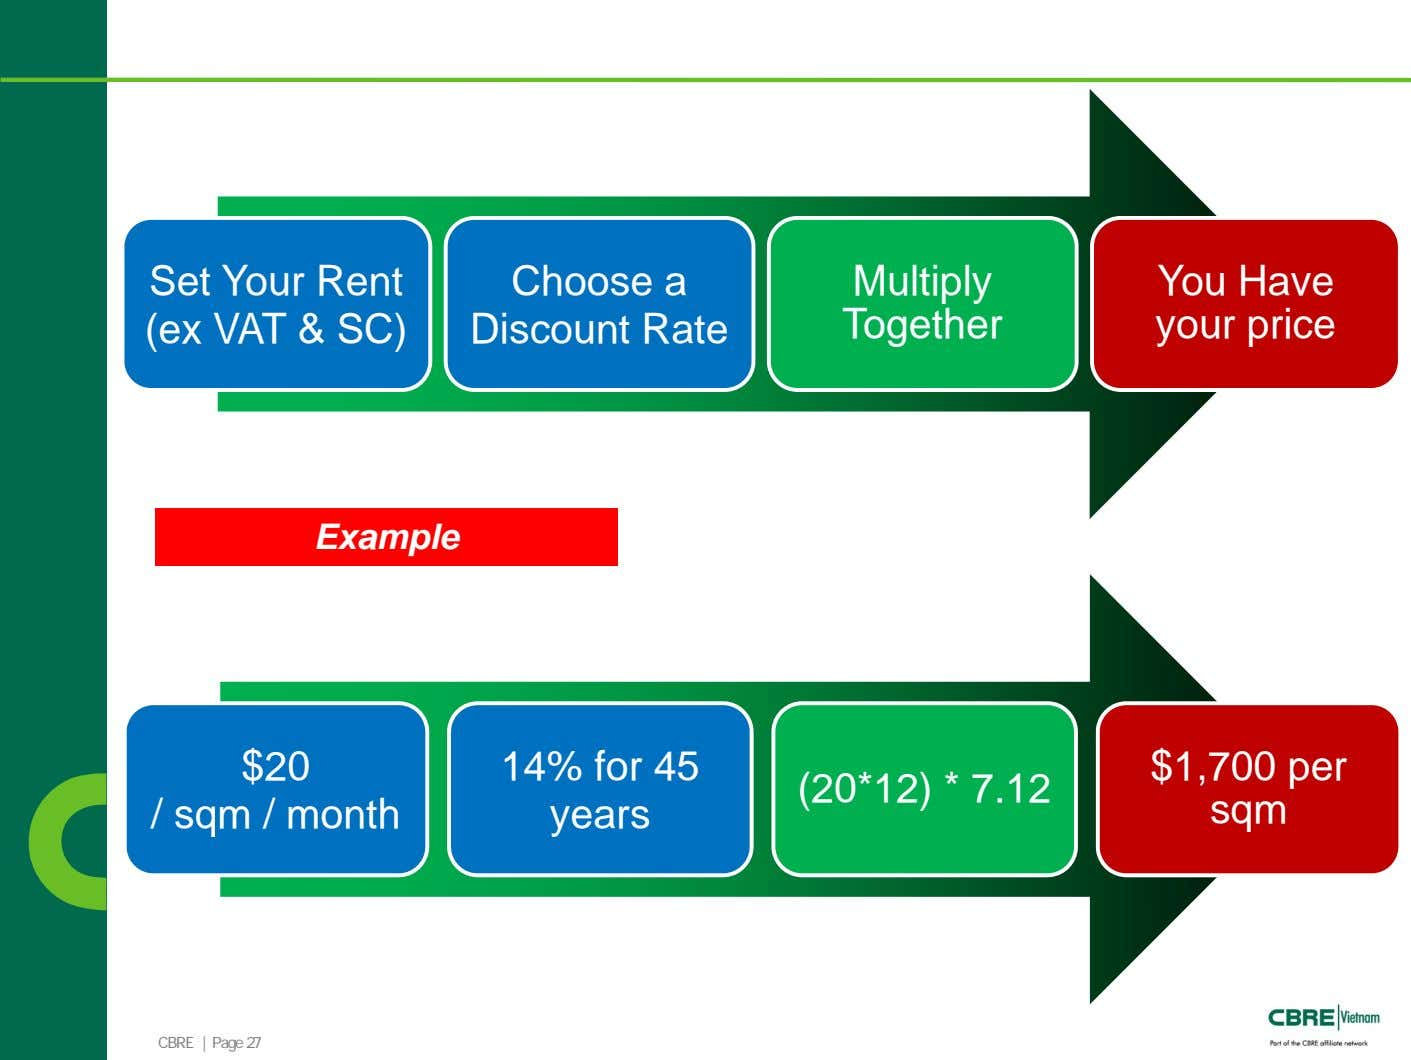 Set Your Rent (ex VAT & SC) Choose a Discount Rate Multiply Together You Have